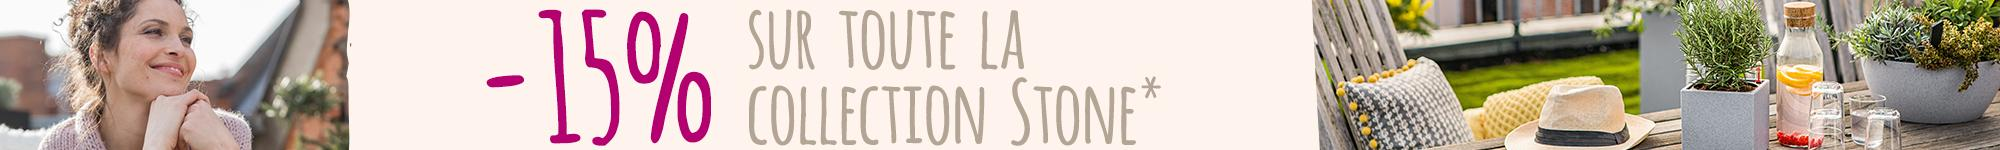 le_listing_banner_promo_stone_collection_fr